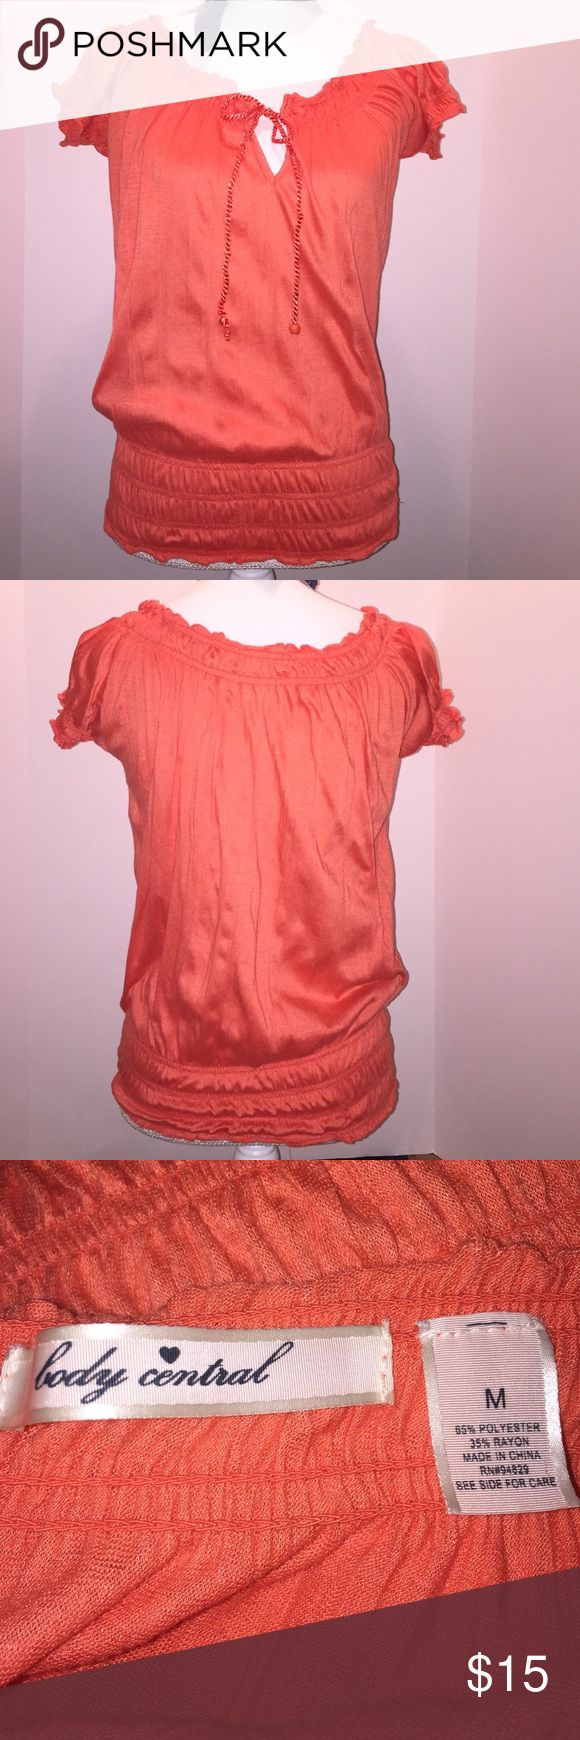 🆕 Listing Body Central 🆕 Listing Body Central Coral Peasant Top - 65% polyester 35% rayon .... I do have color in my closet! 😘 Body Central Tops